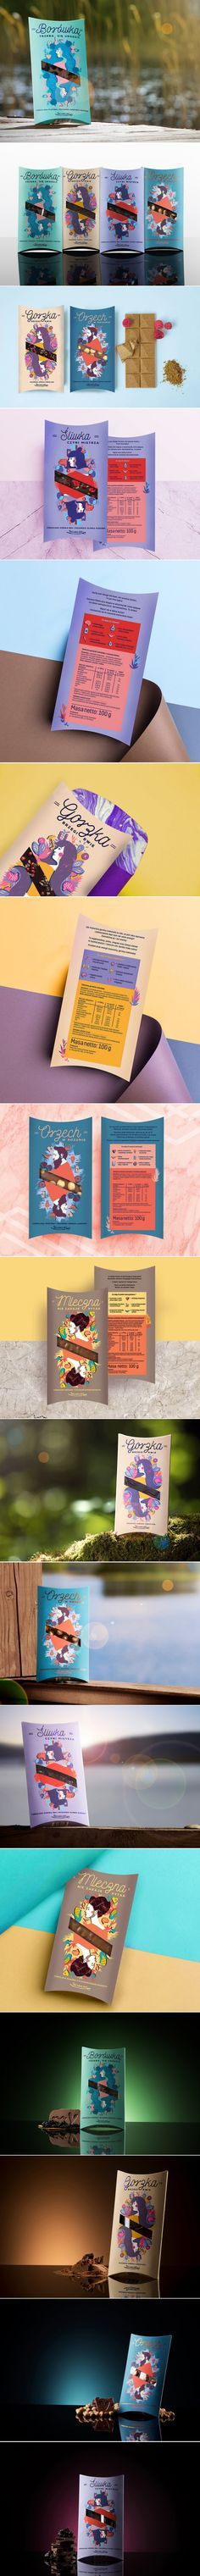 Each Flavor of These Chocolates Comes With a Distinct Personality — The Dieline | Packaging & Branding Design & Innovation News